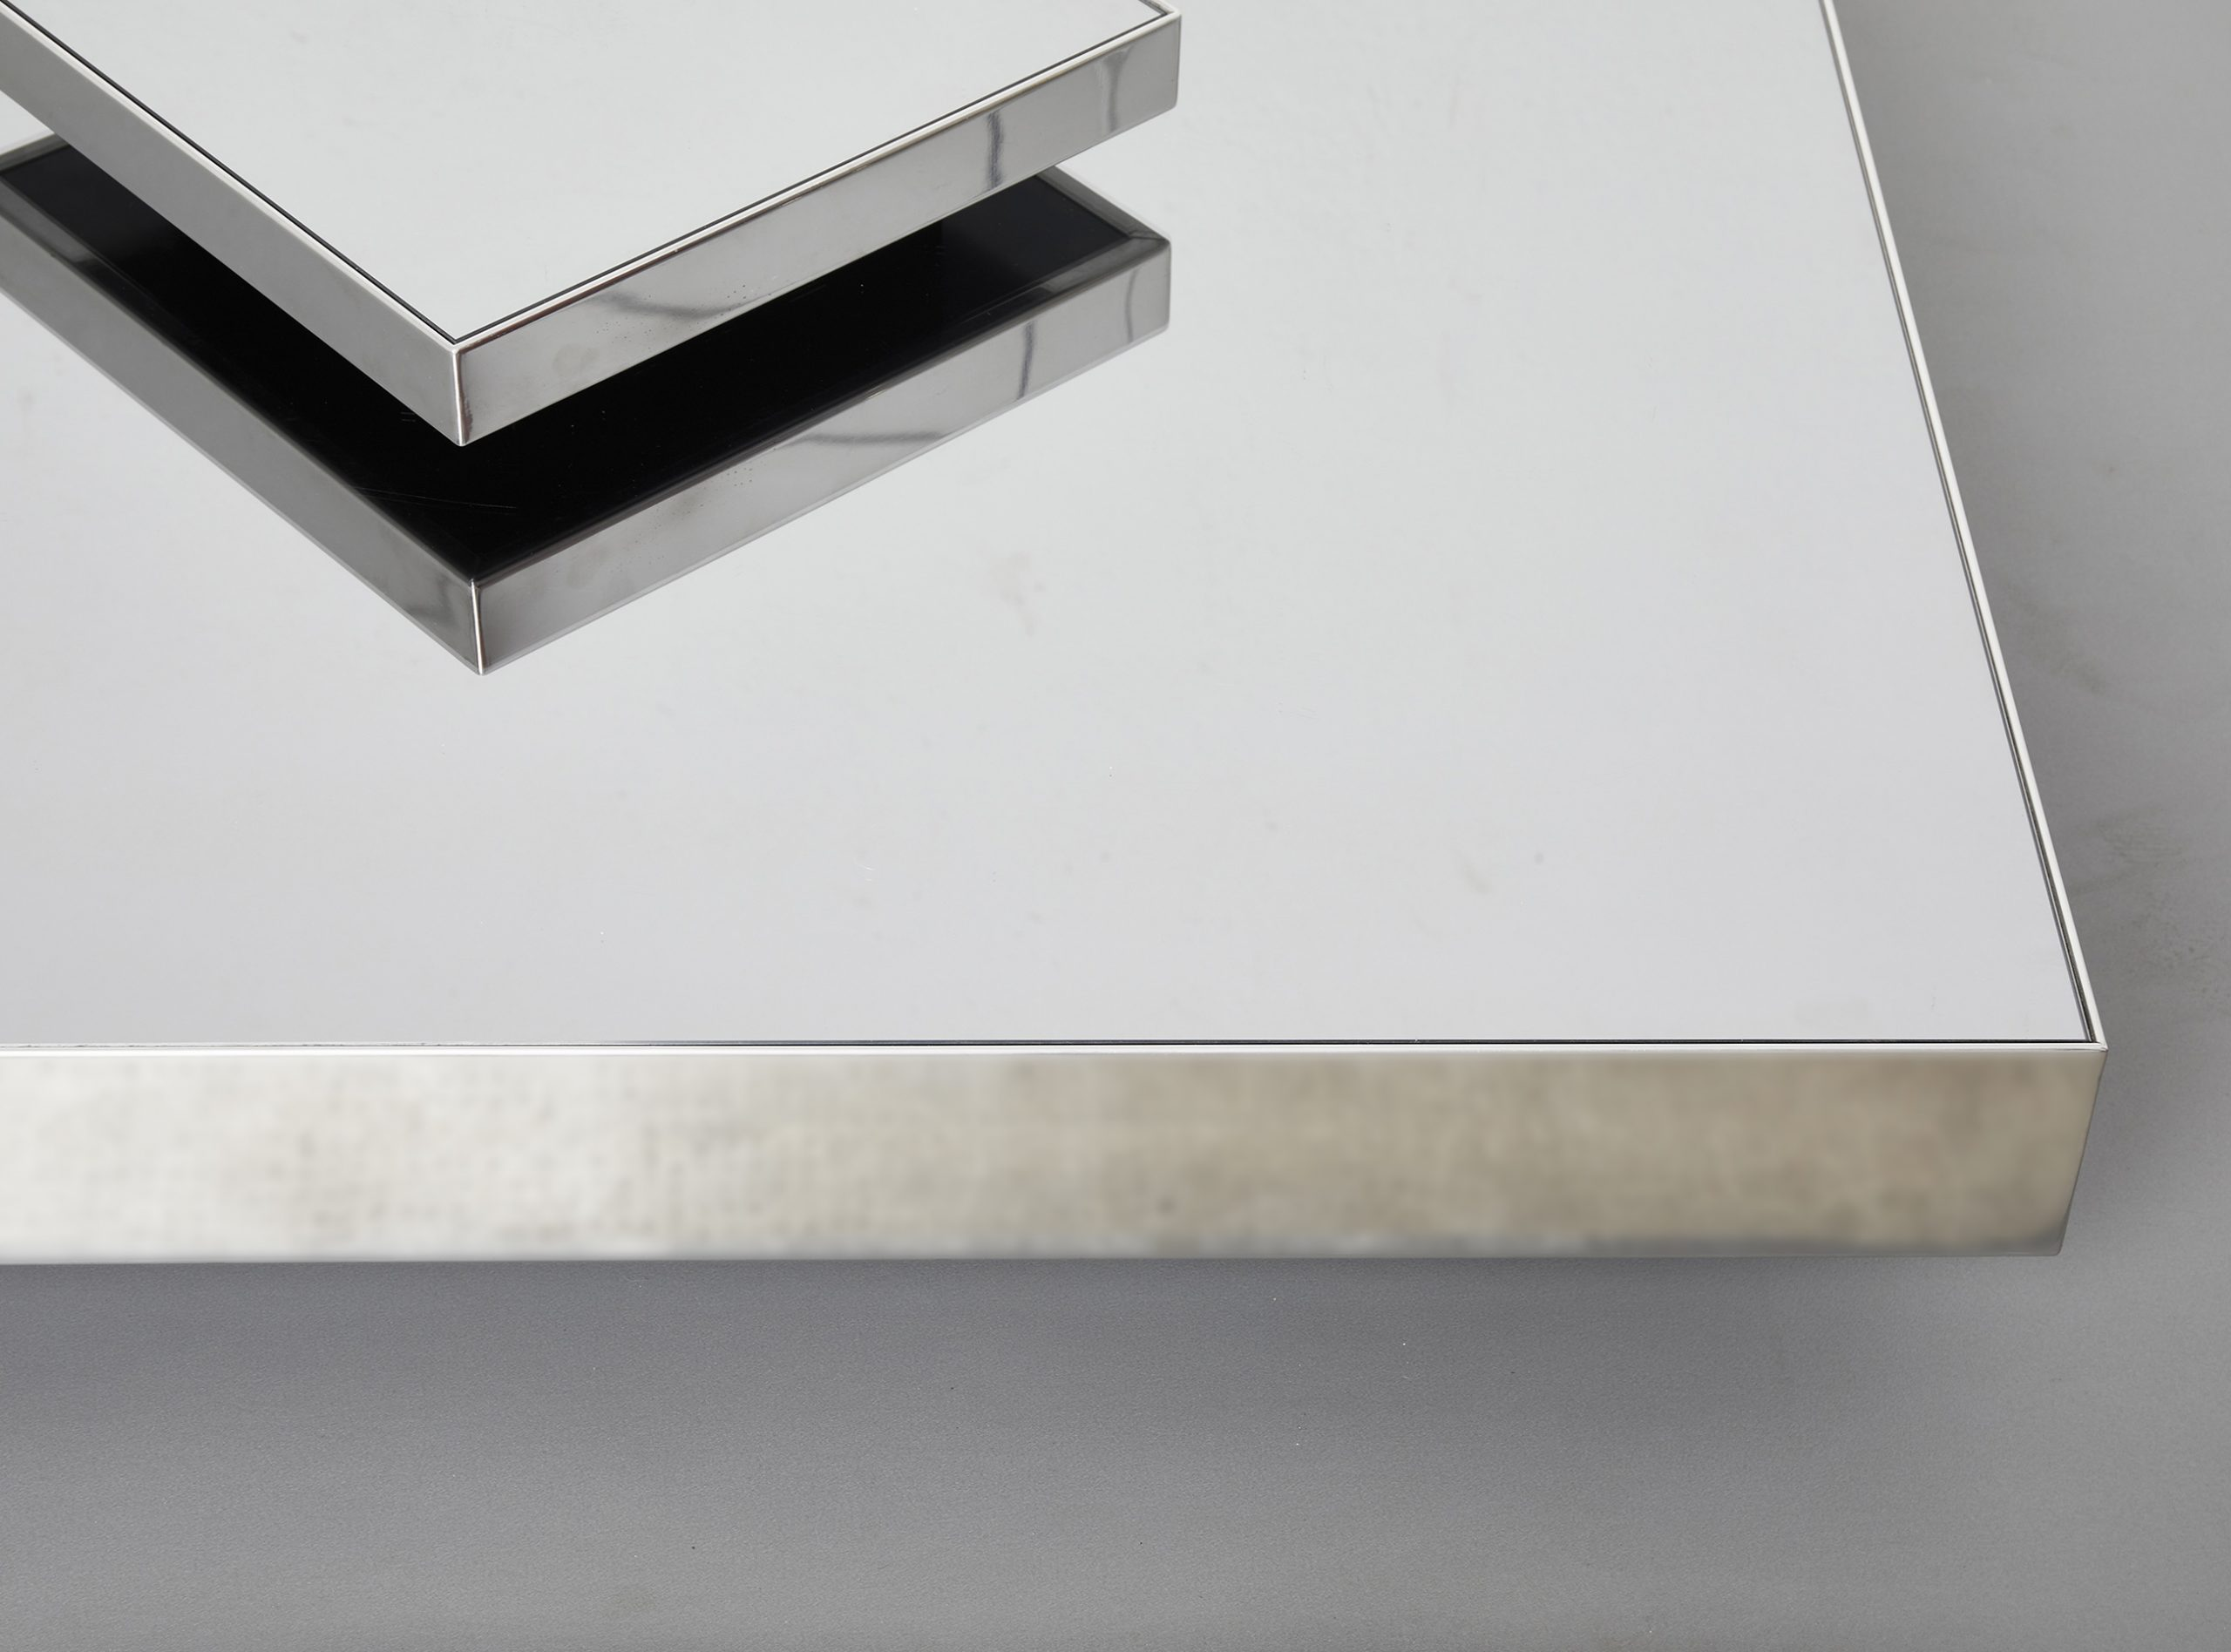 square-coffee-table-by-giovanni-ausenda-ny-form-1970-image-06